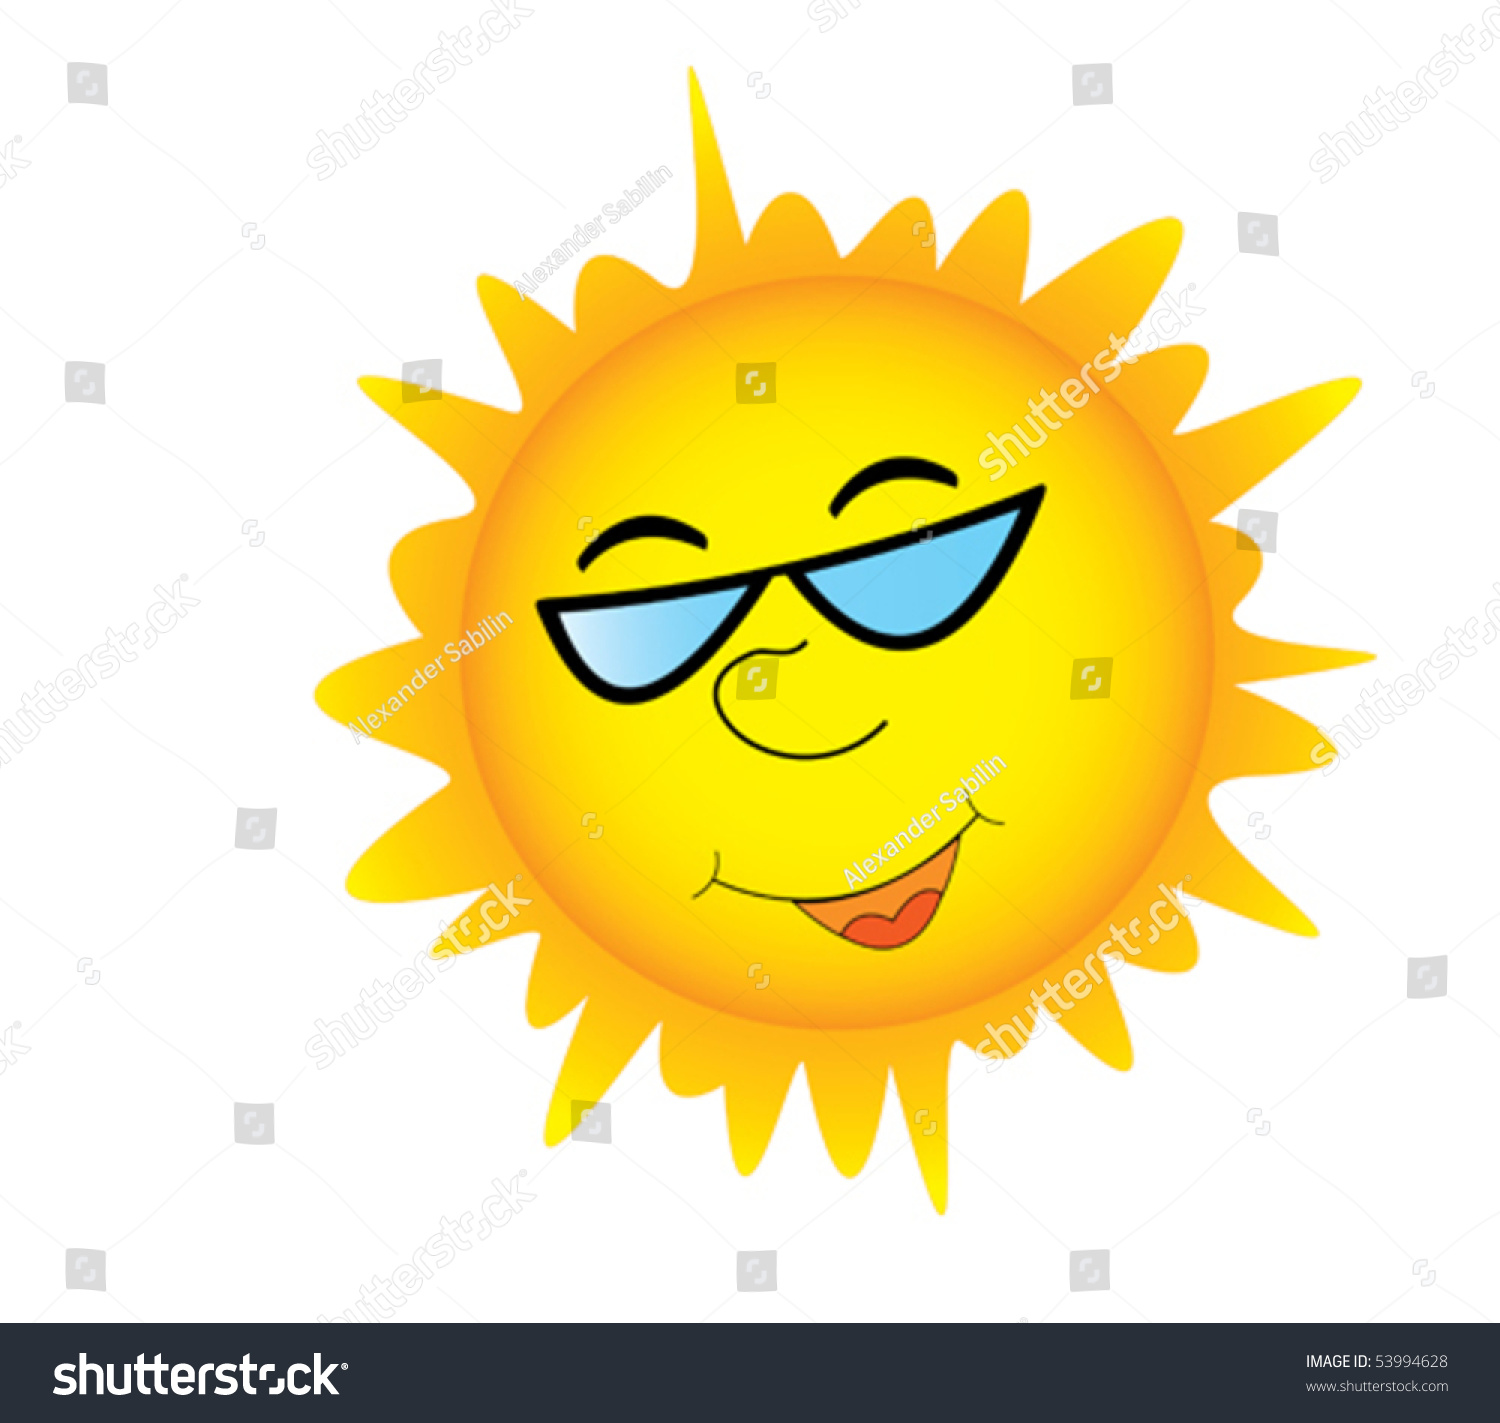 Smiling sun with sunglasses - Smiling Sun In Sunglasses